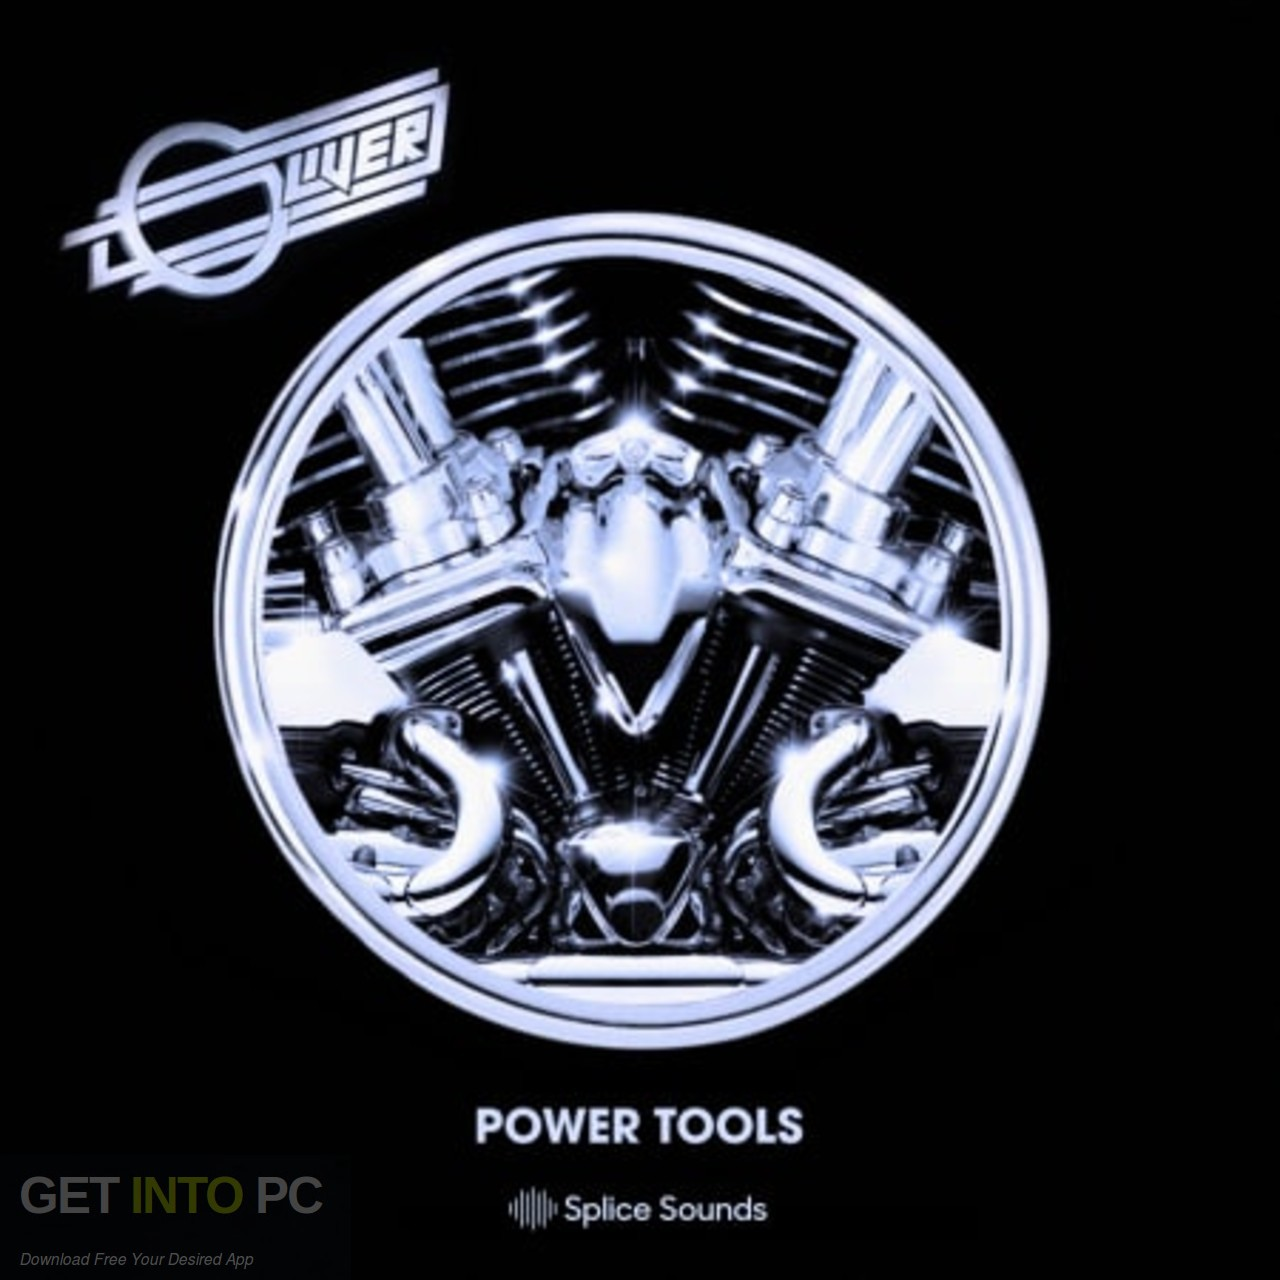 Splice Sounds - Oliver: Power Tools Sample Pack II (WAV) Free Download